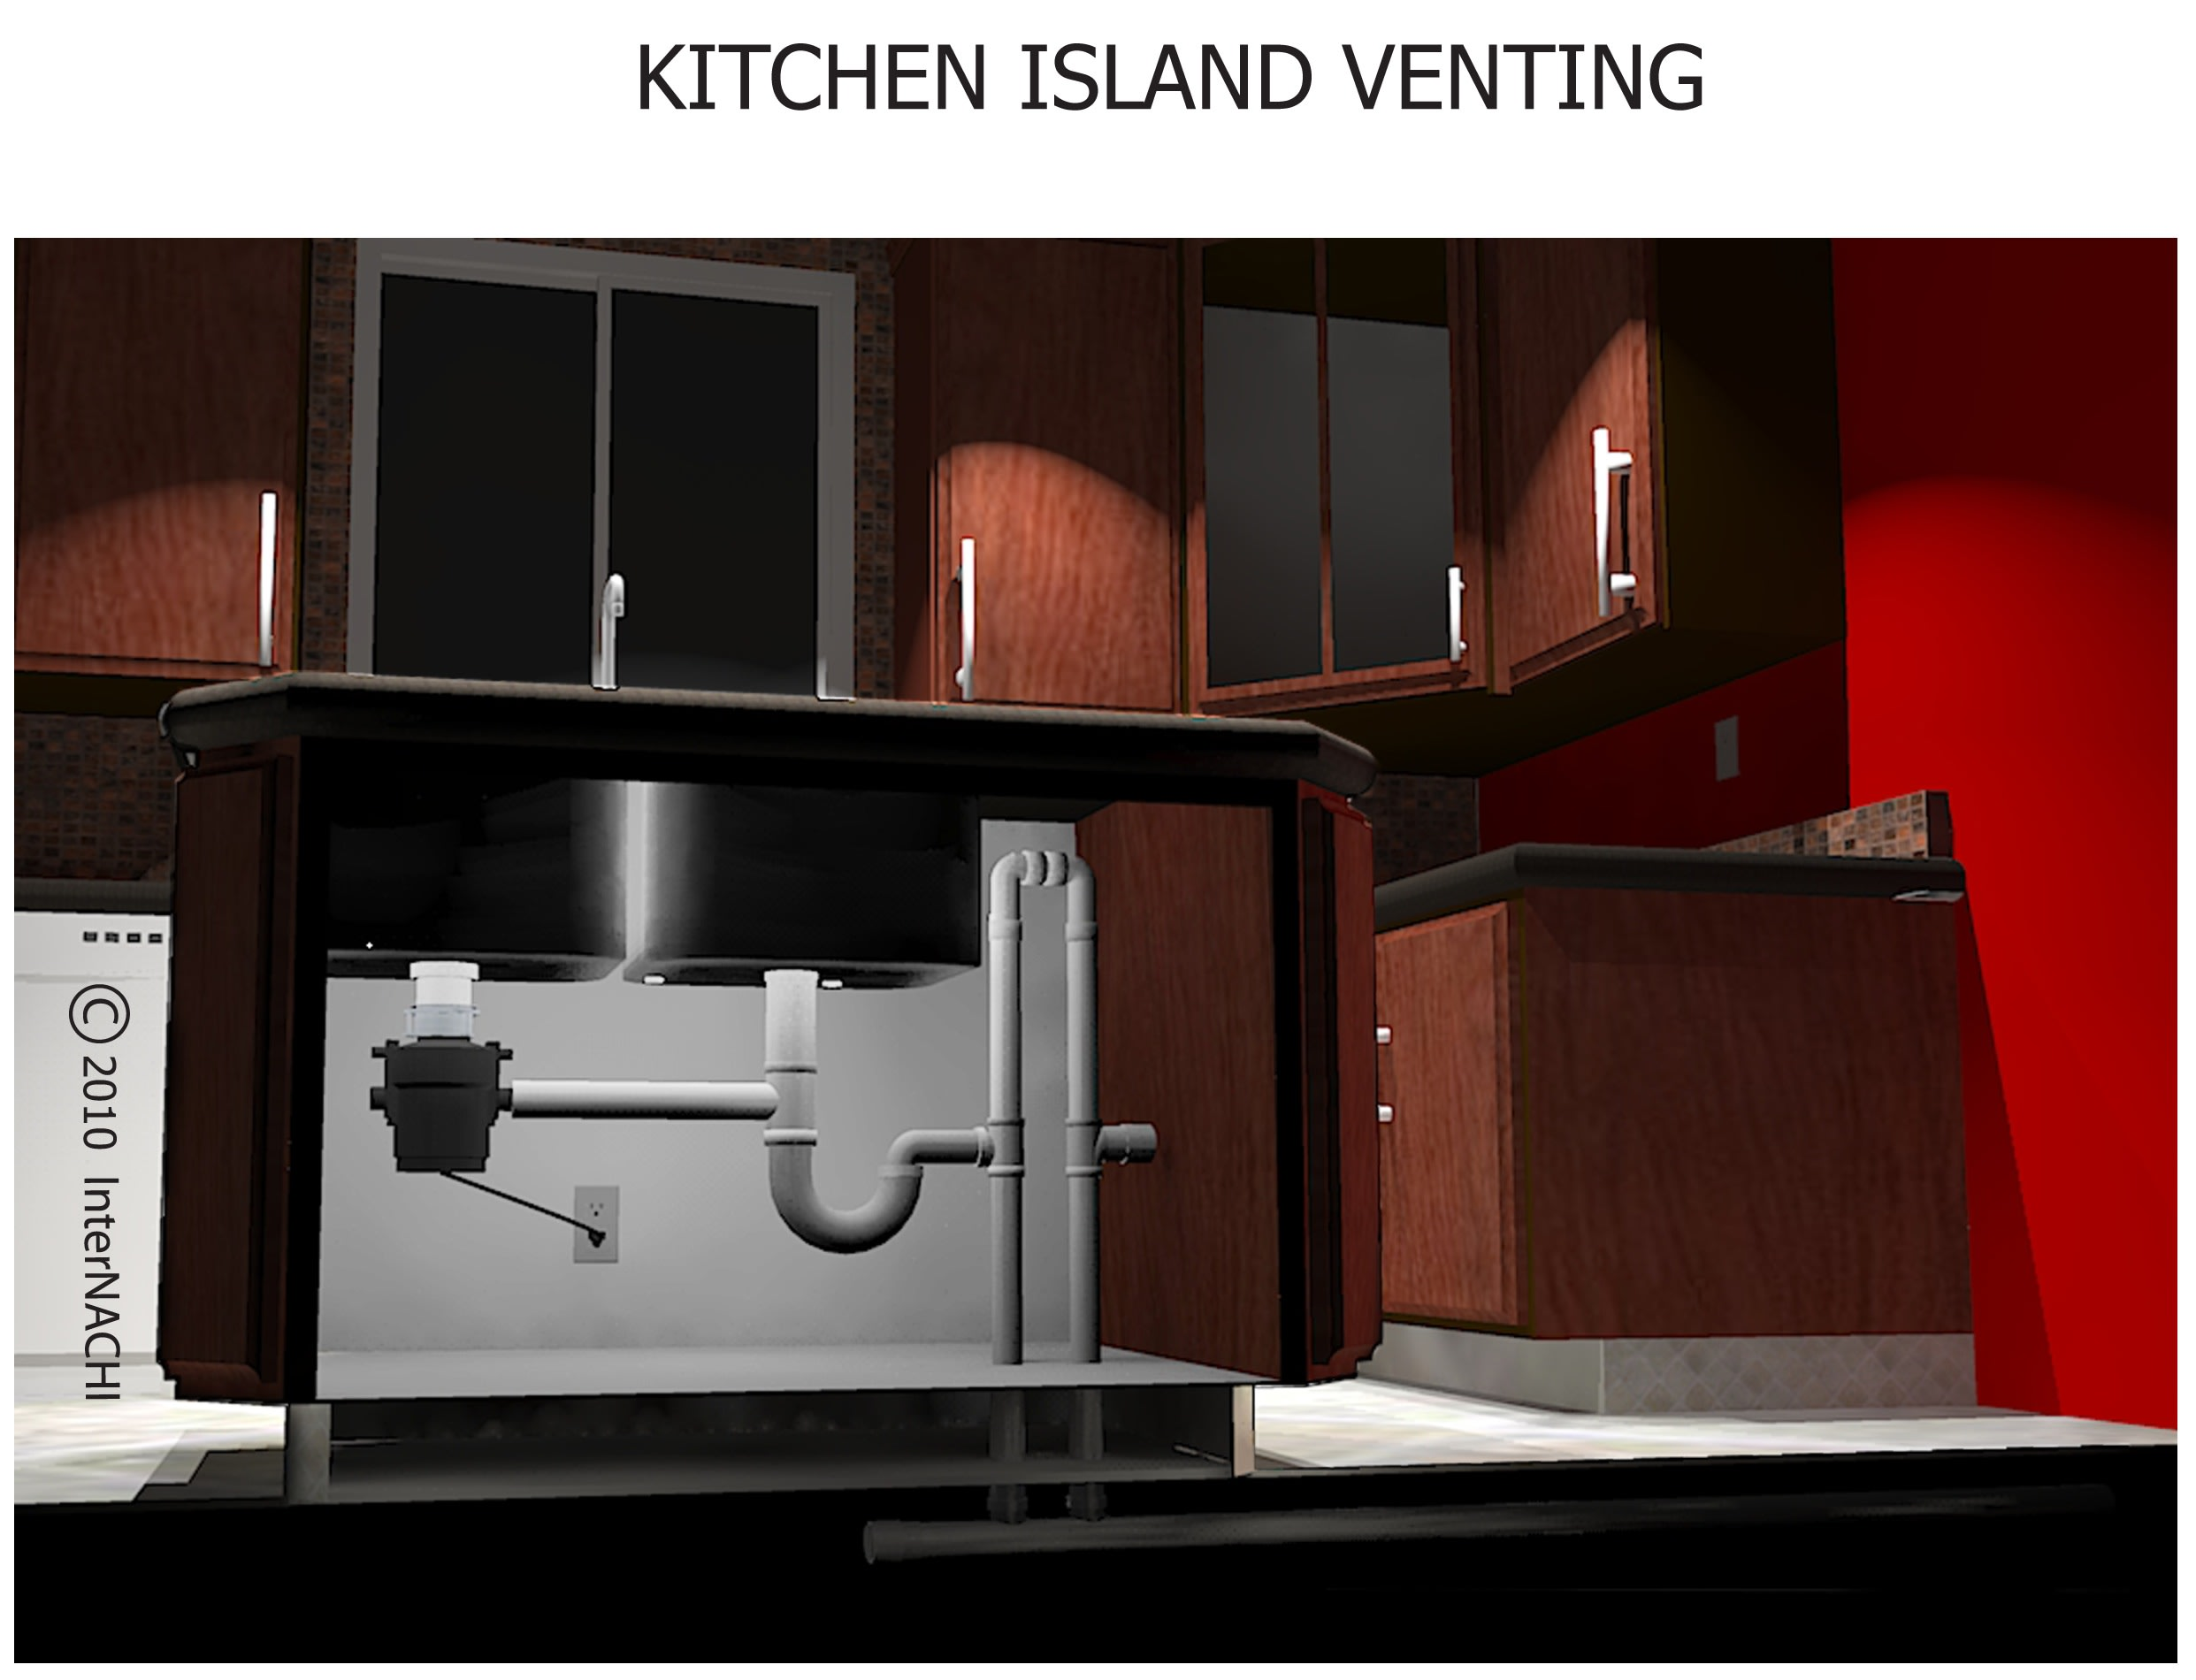 Kitchen Island Vent Plumbing Home Design Inspiration